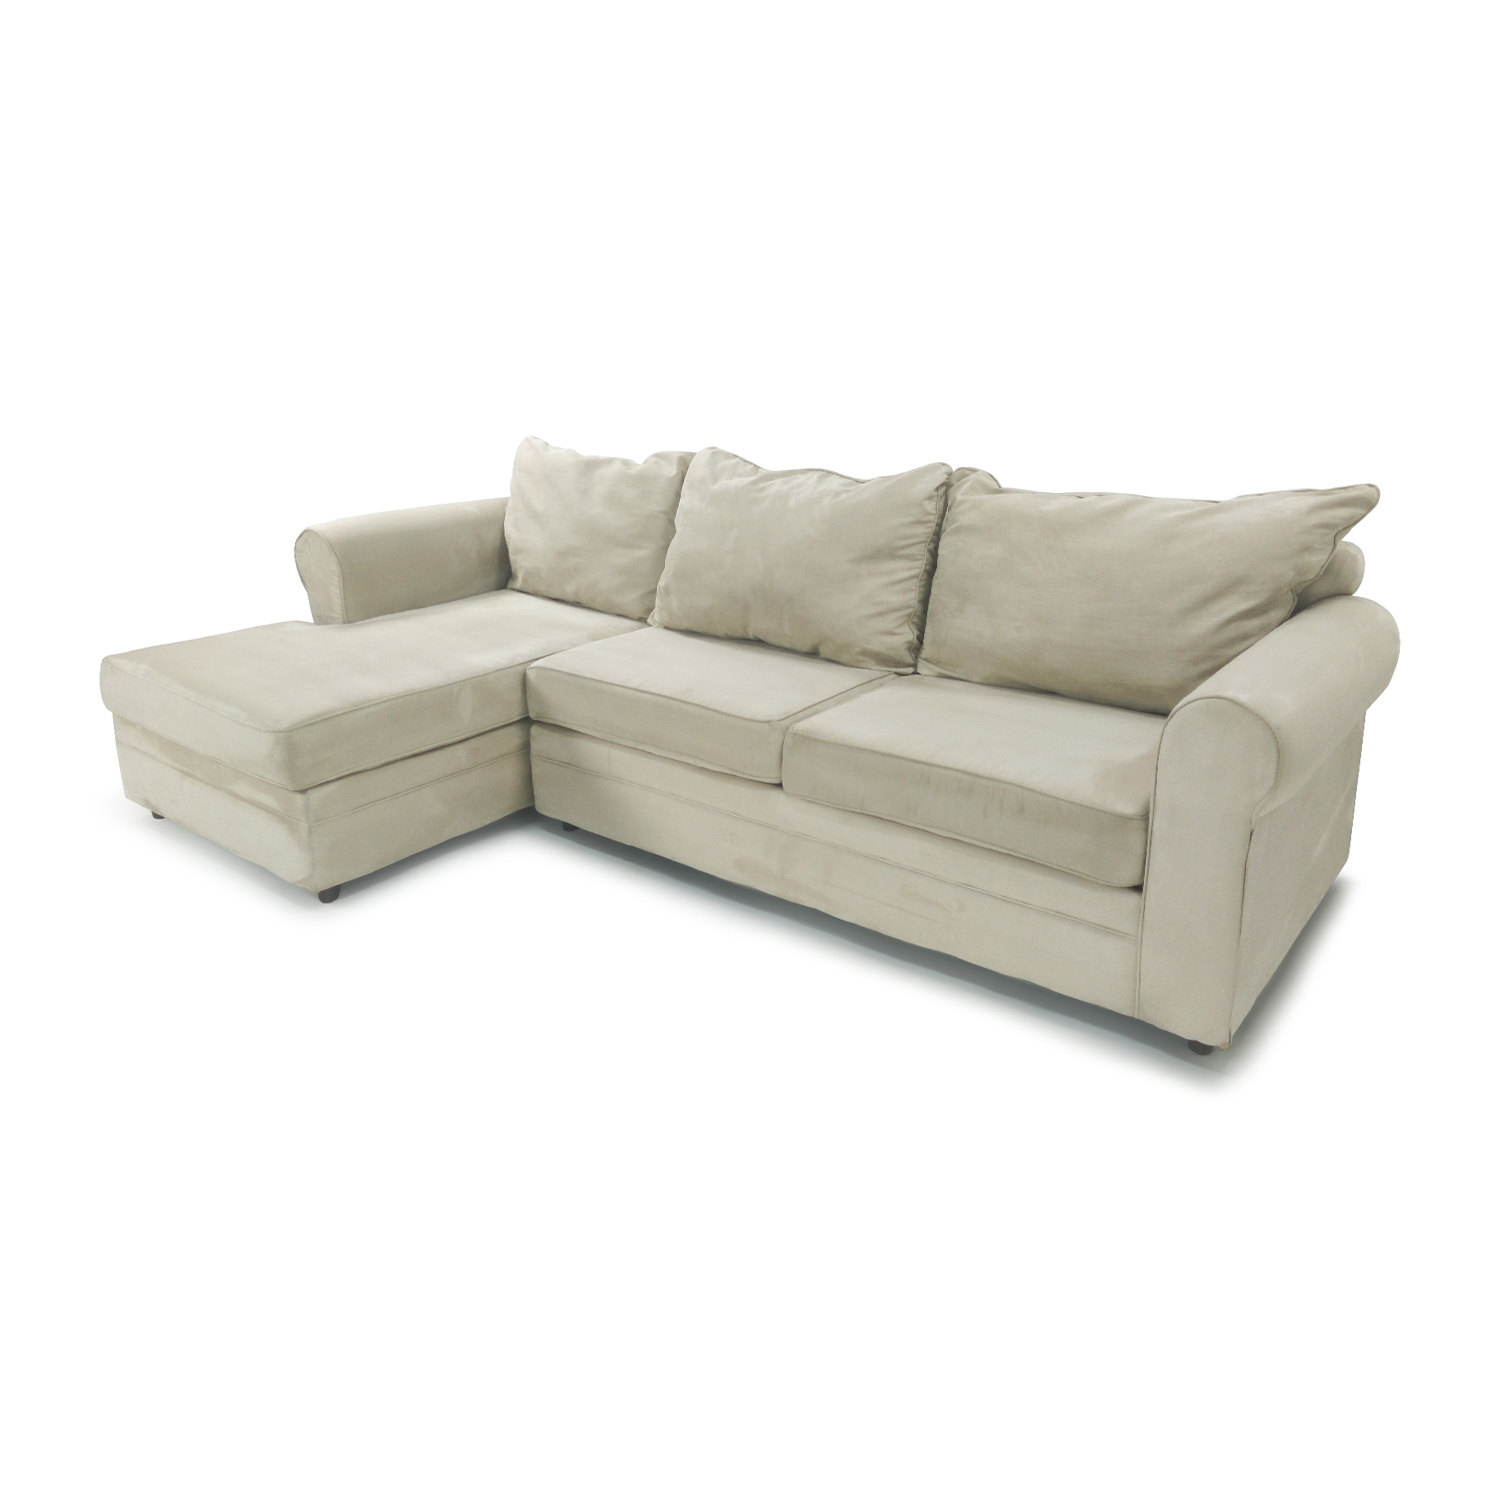 50 off bobs furniture venus 2 piece sectional sofas for Bobs used furniture